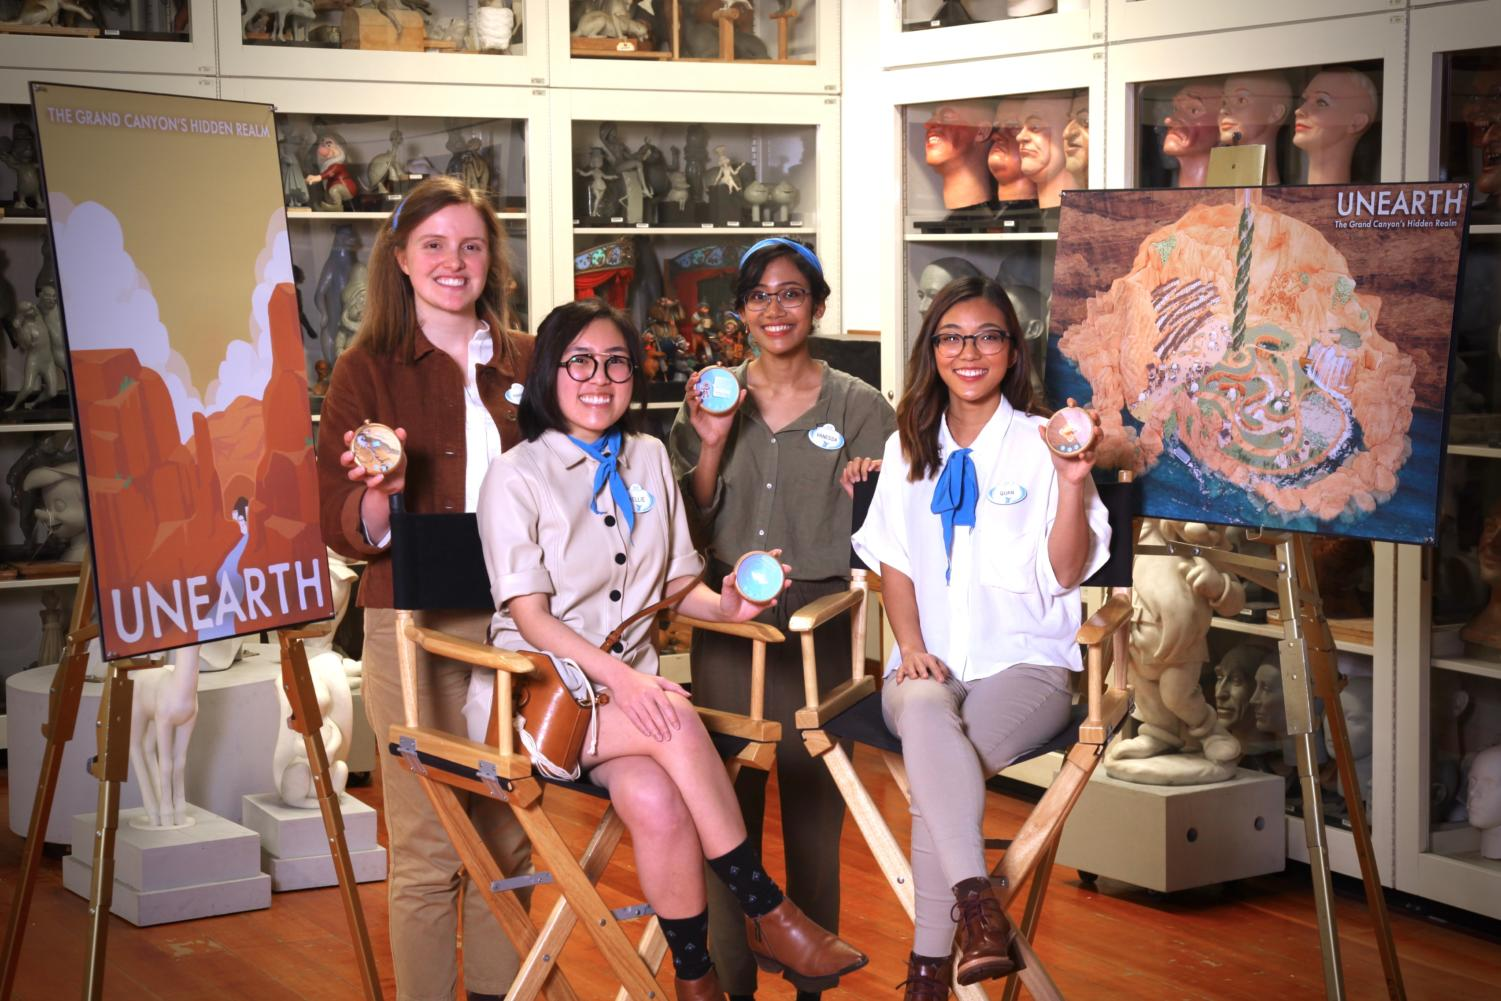 Team members Hannah Williams, Kellie Nguyen, Vanessa Astronoto and Quan Ha, compete in the Walt Disney Imagineering Imaginations Design Competition in Los Angeles with their entry, Unearth. The theme of the competition is natural or ancient wonders of the world. Williams is a 2014 graduate of Coppell High School.